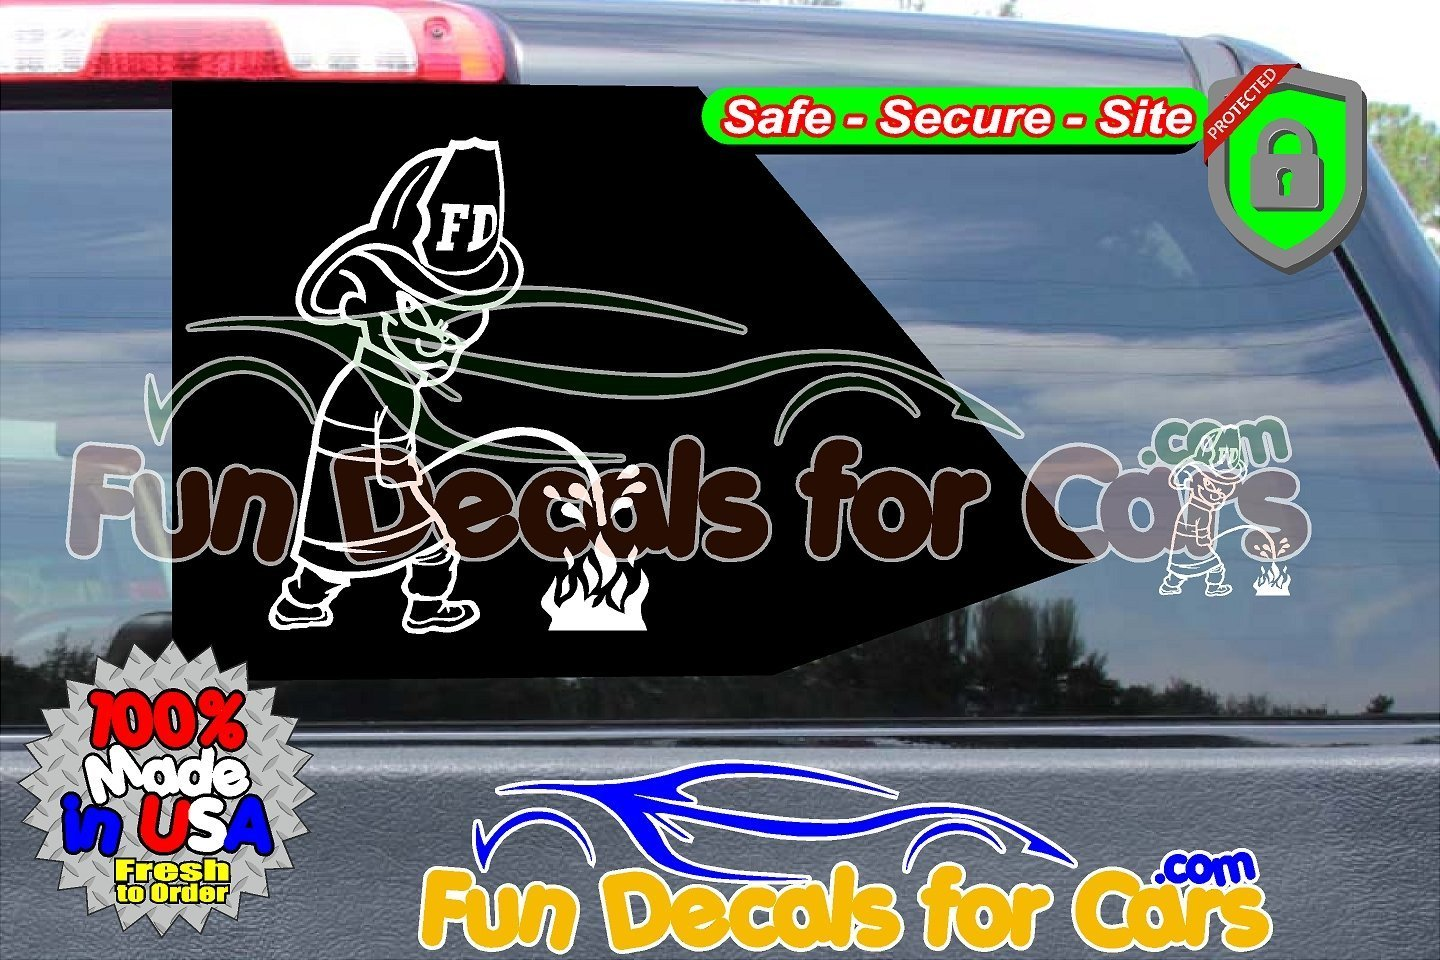 Calvin Fireman Pee on Fire Sticker Vinyl Die Cut Decal